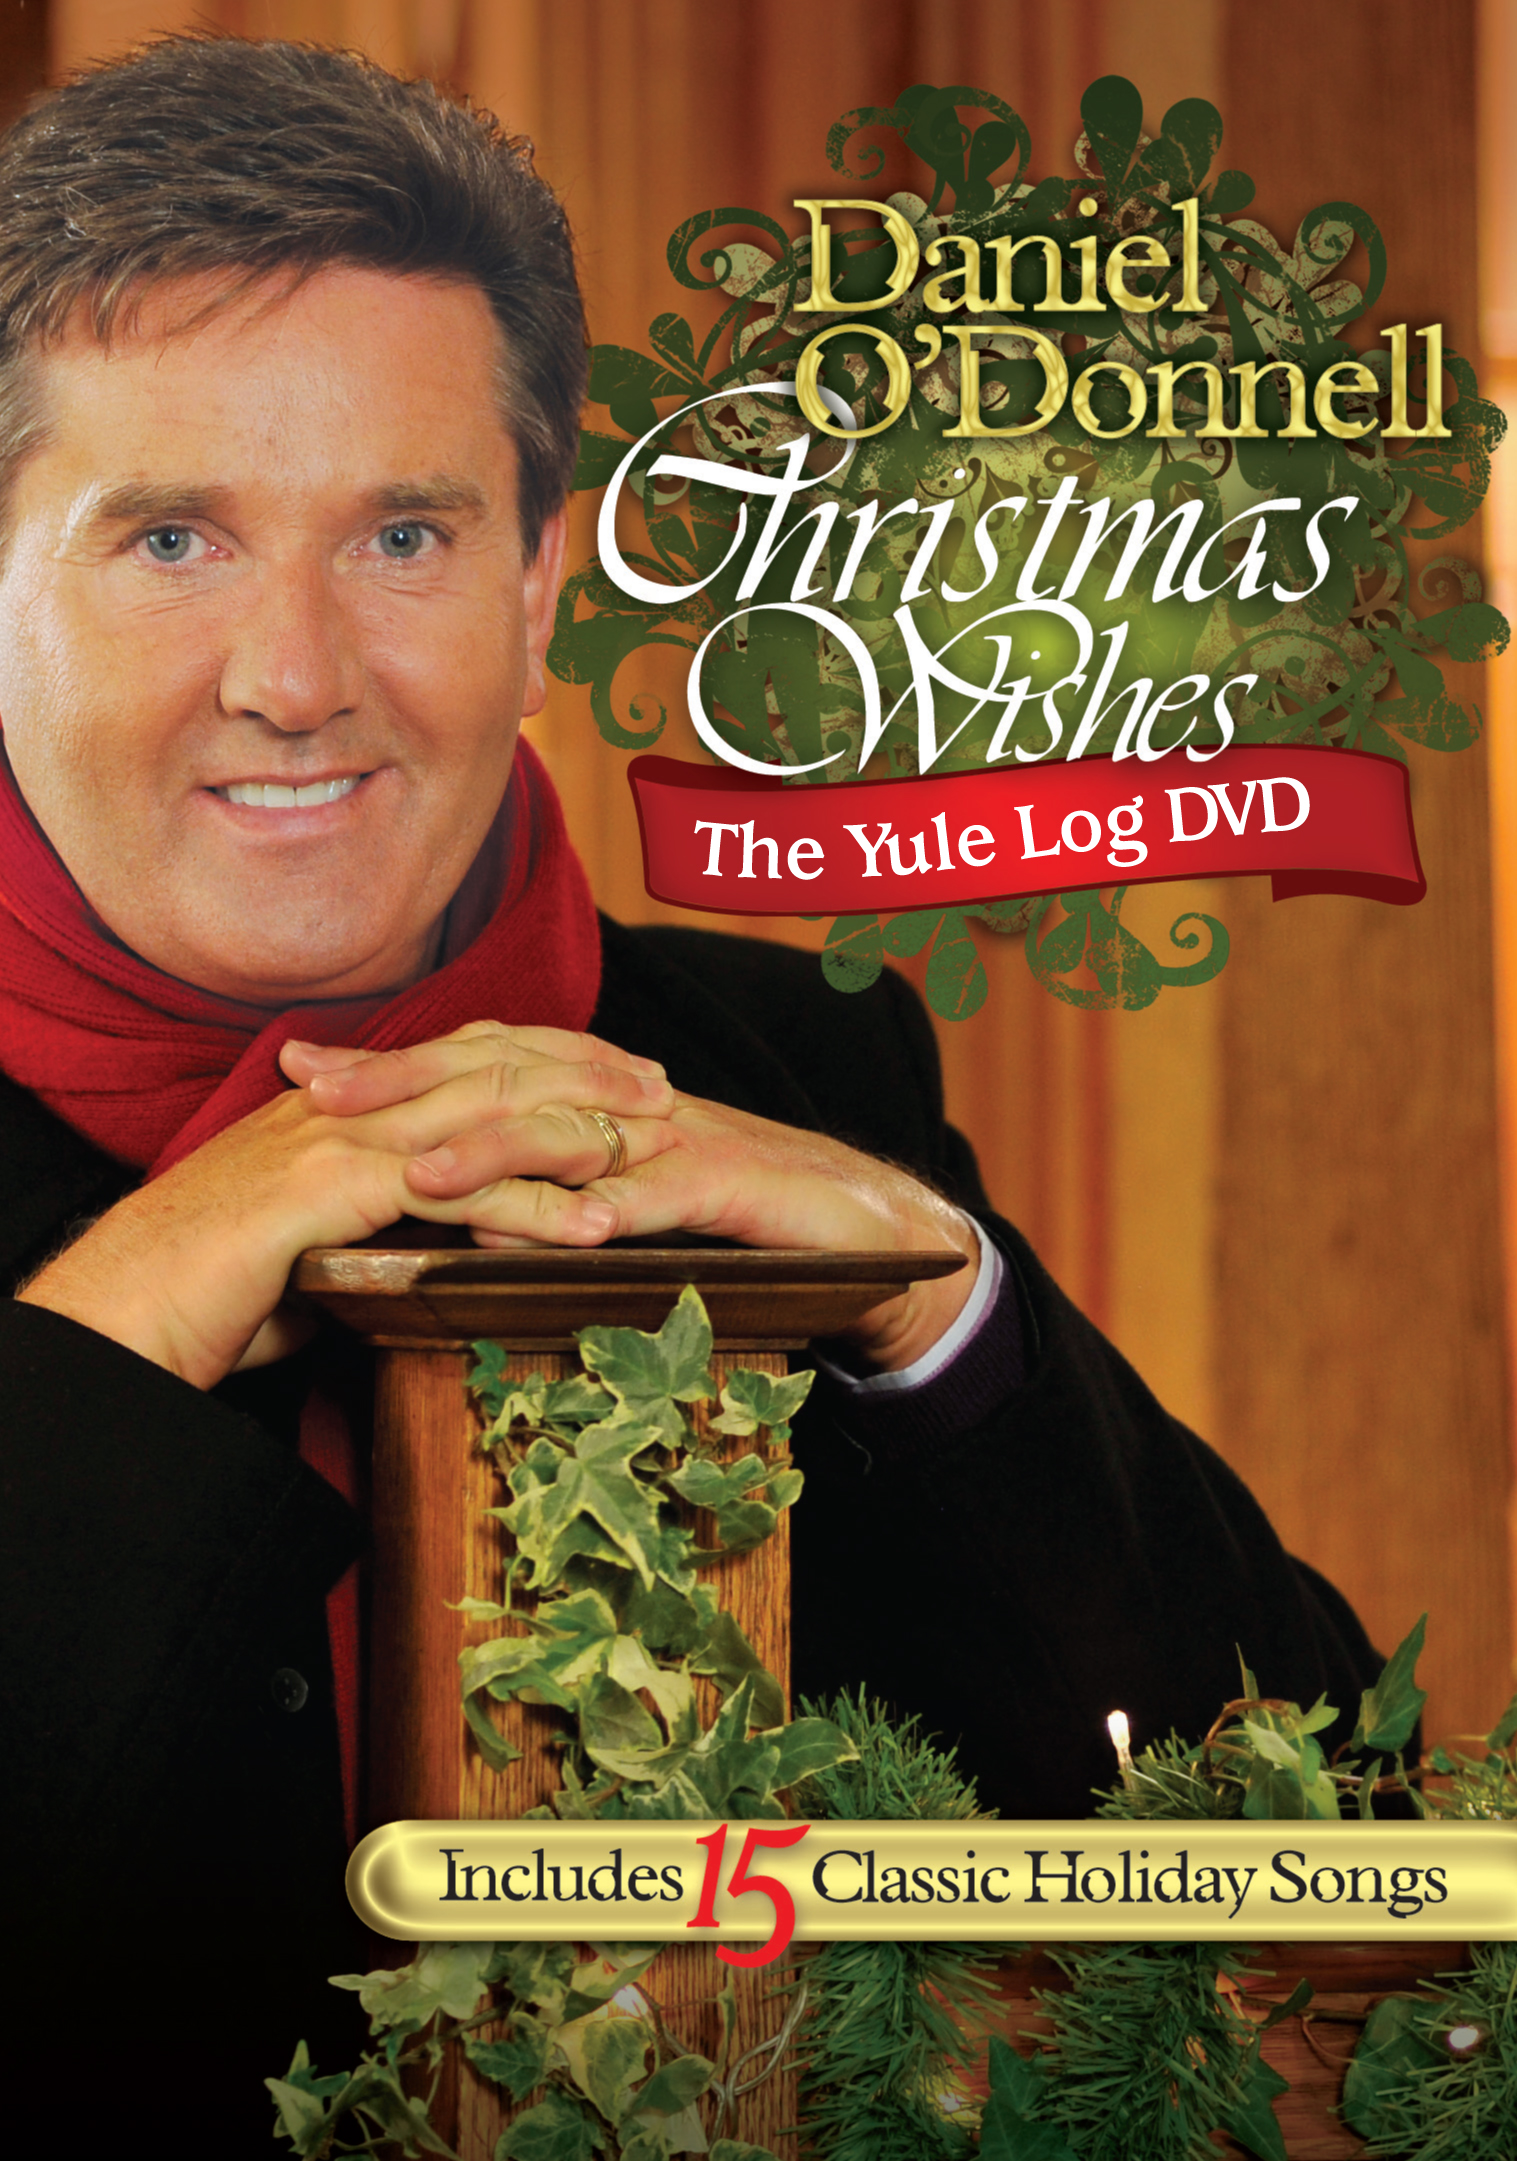 Daniel O'Donnell: Christmas Wishes - The Yule Log DVD